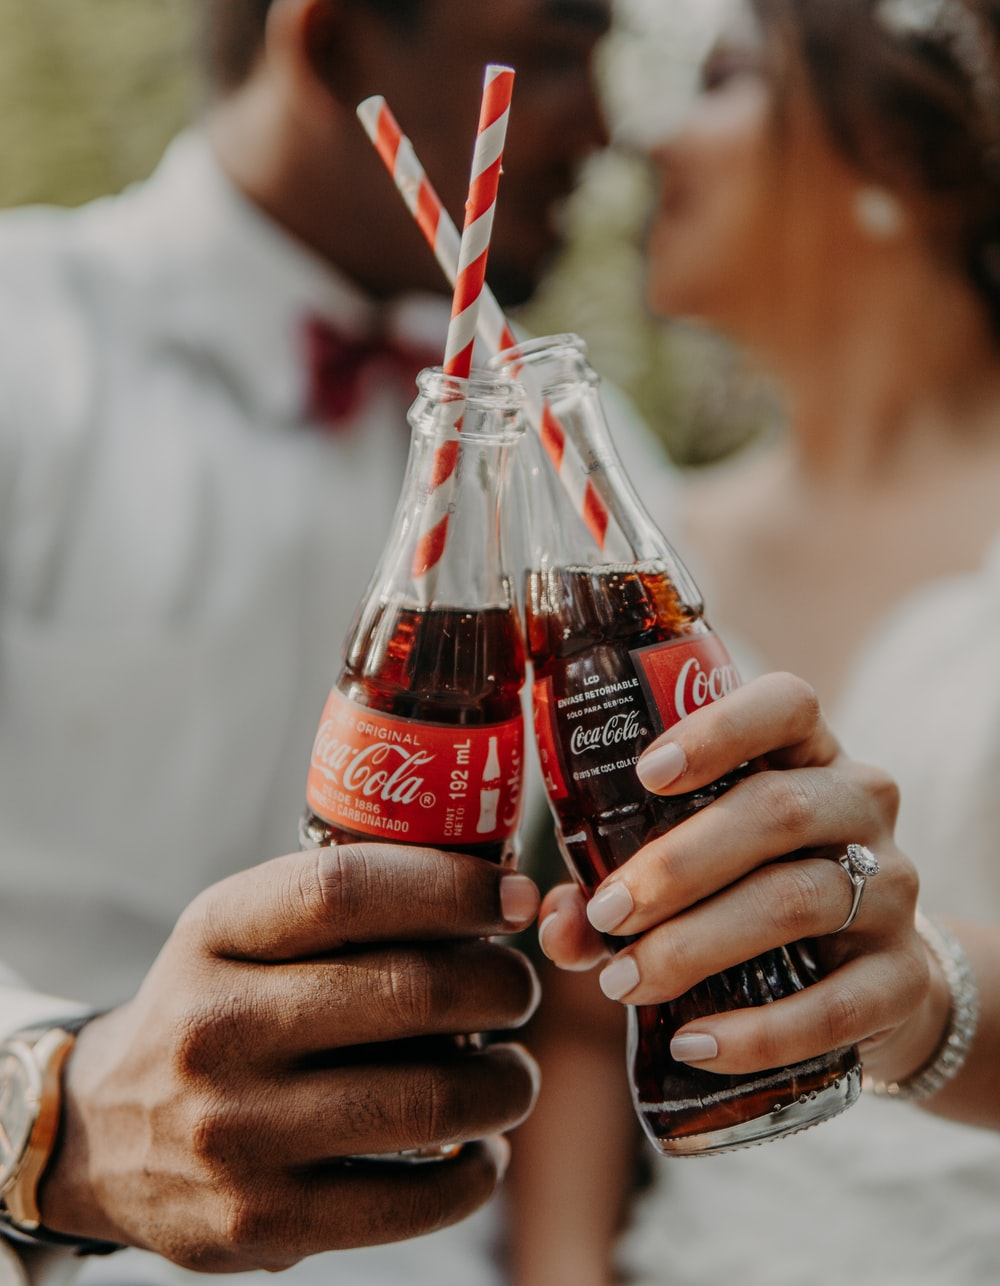 person holding coca cola bottle